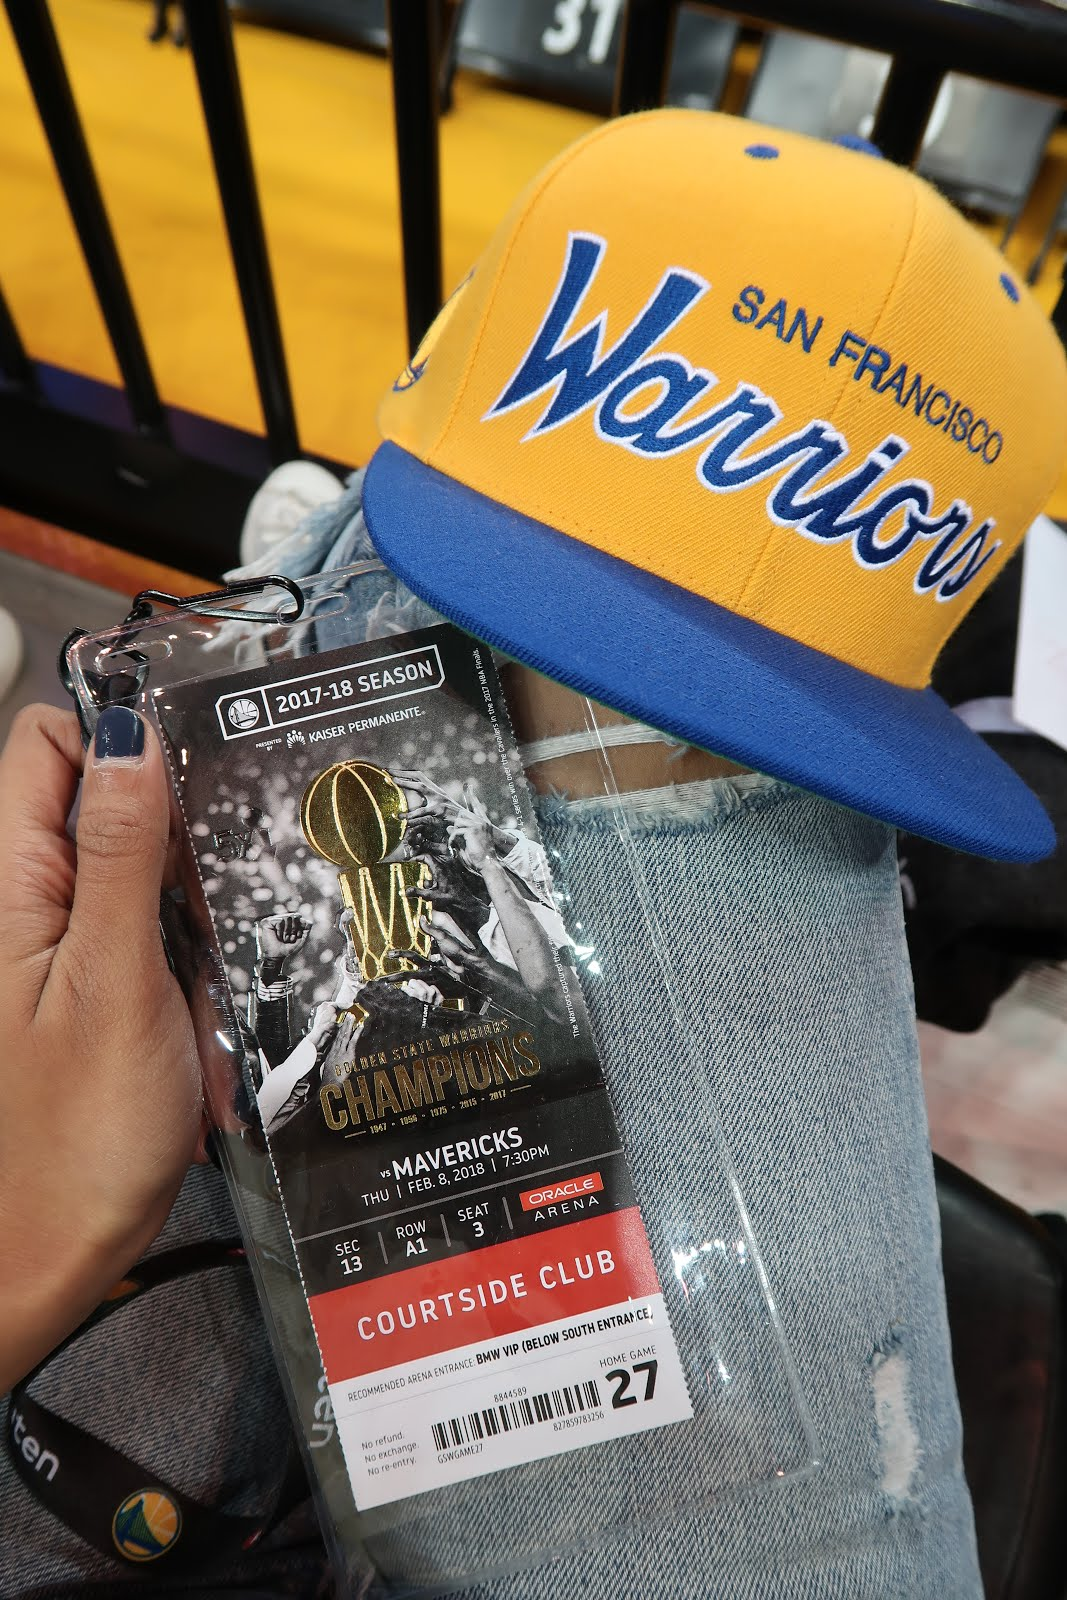 ShopStyle Warriors Basketball game courtside seats!